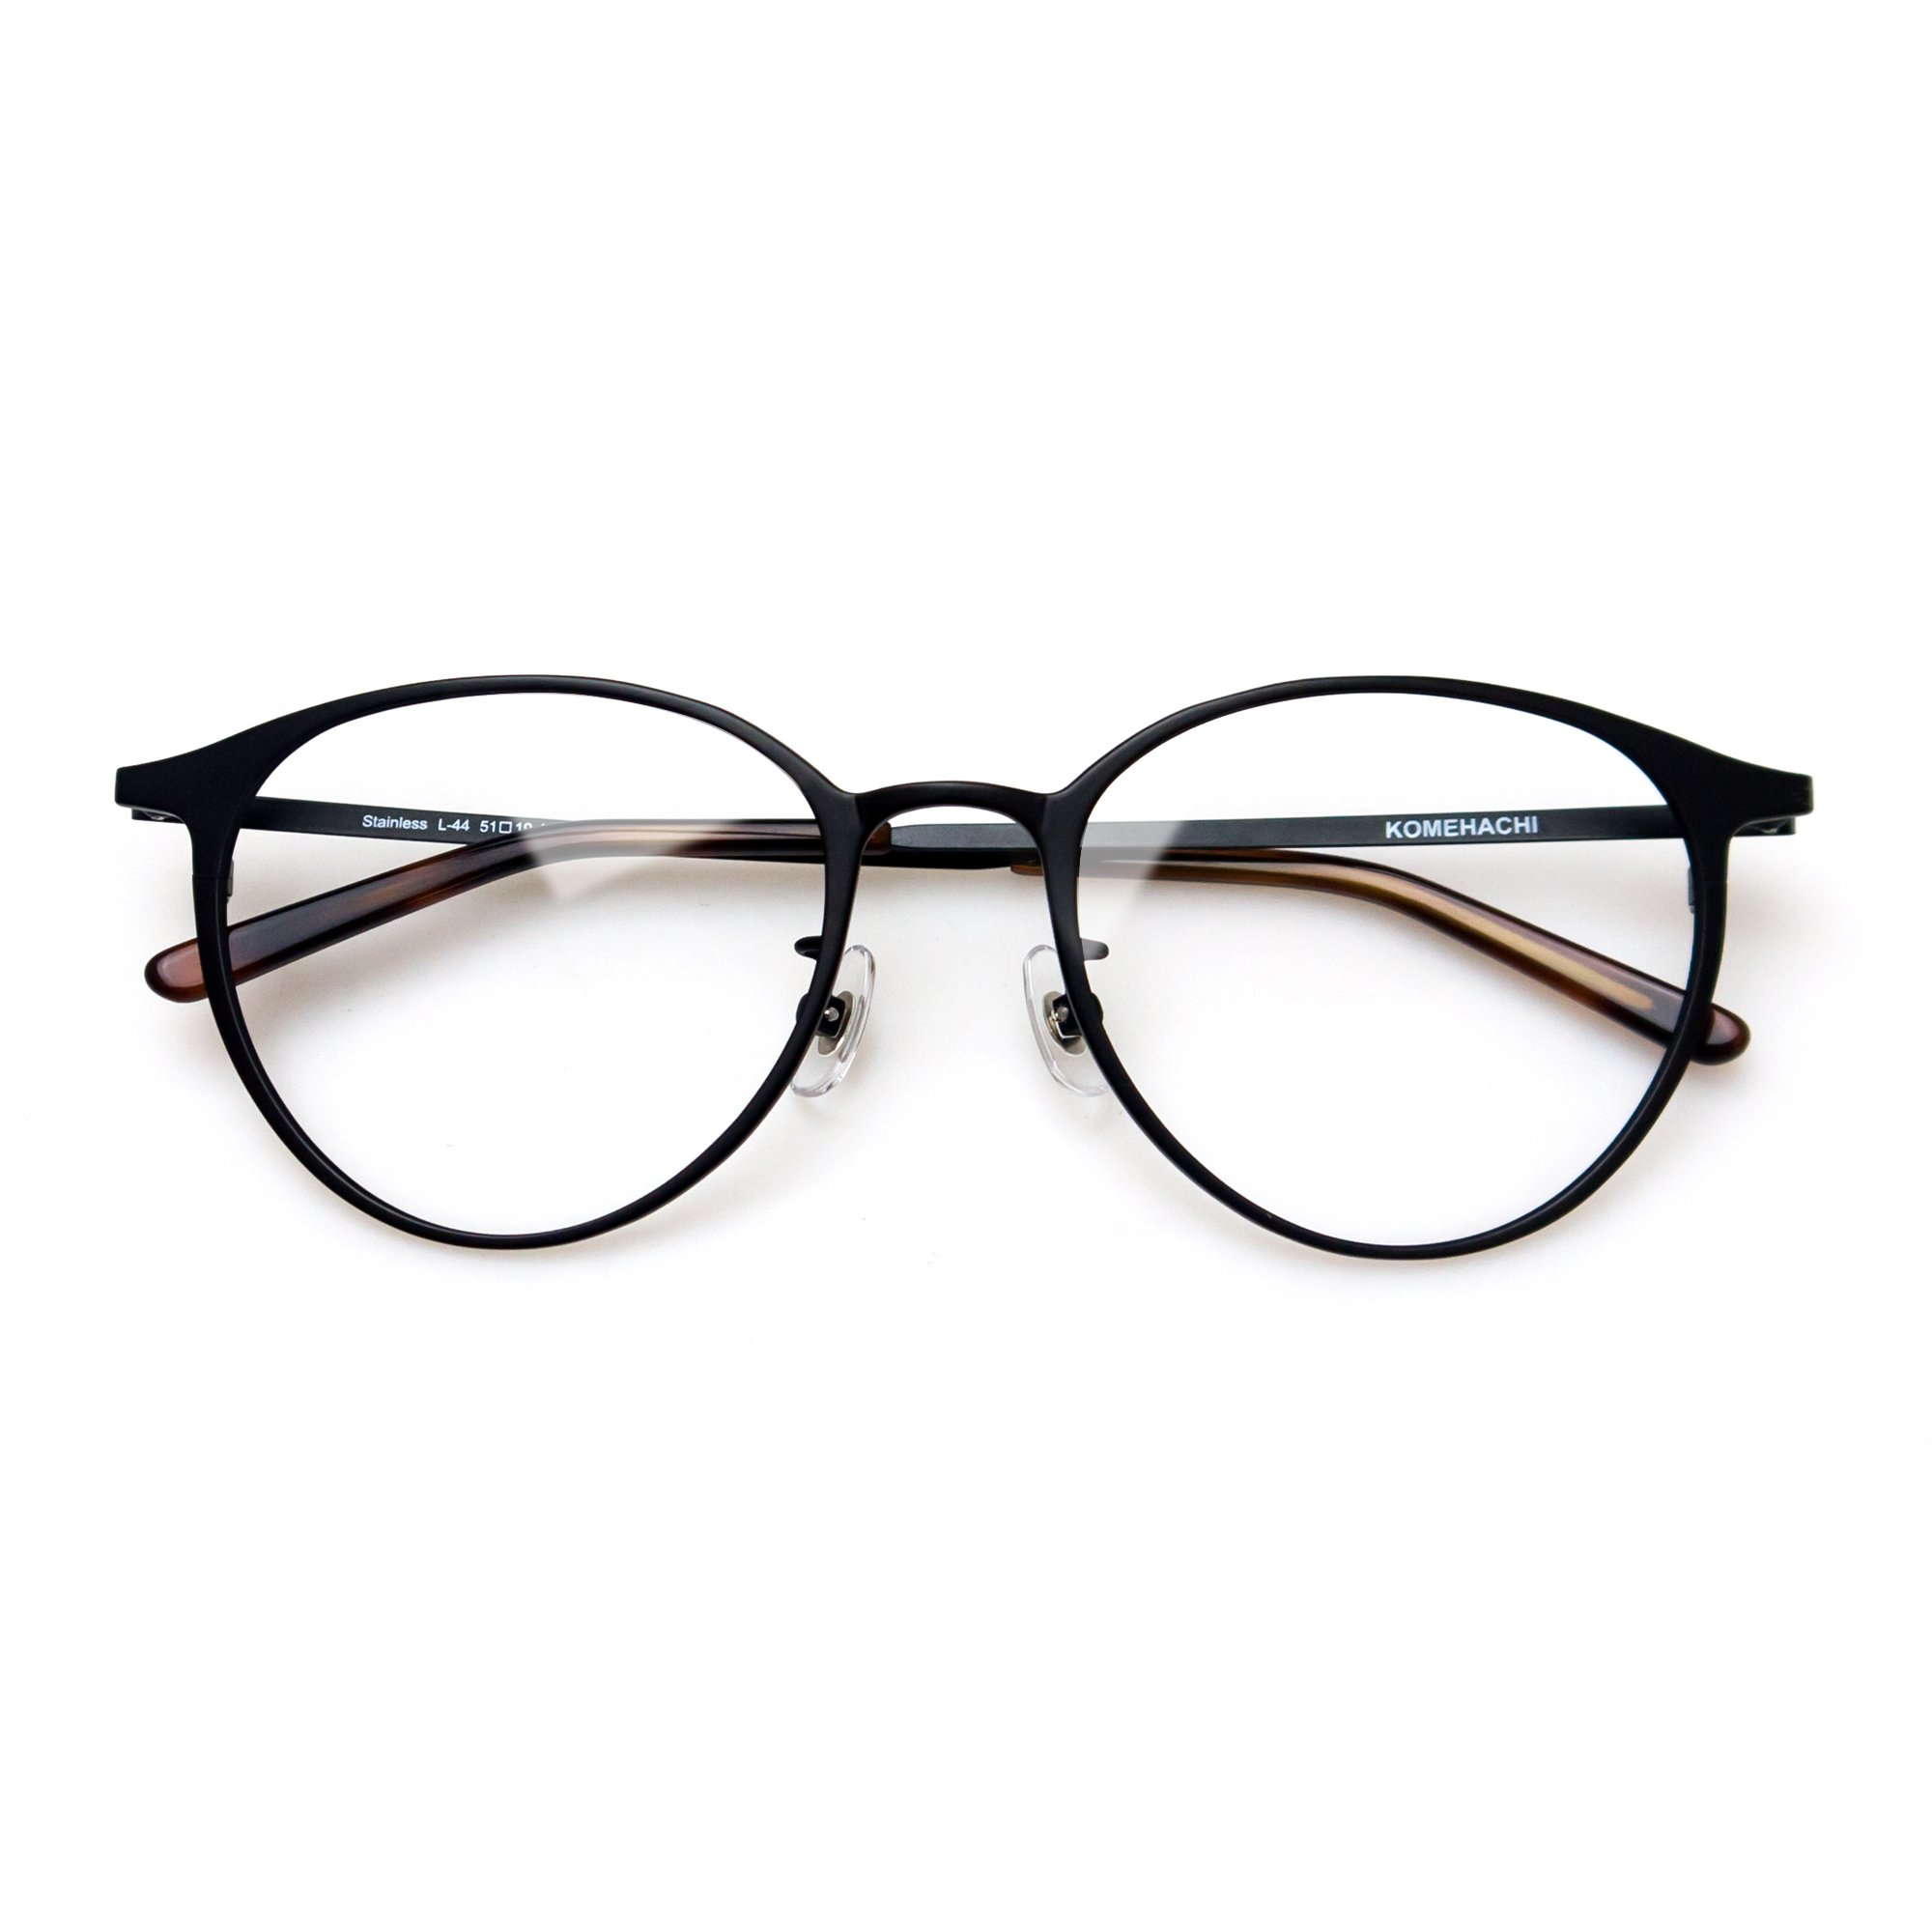 Komehachi - Super Light Unisex Vintage Simple Elegant Round Metal RX-Ready Eyeglasses Frame with Clear Lenses (Black) by Komehachi